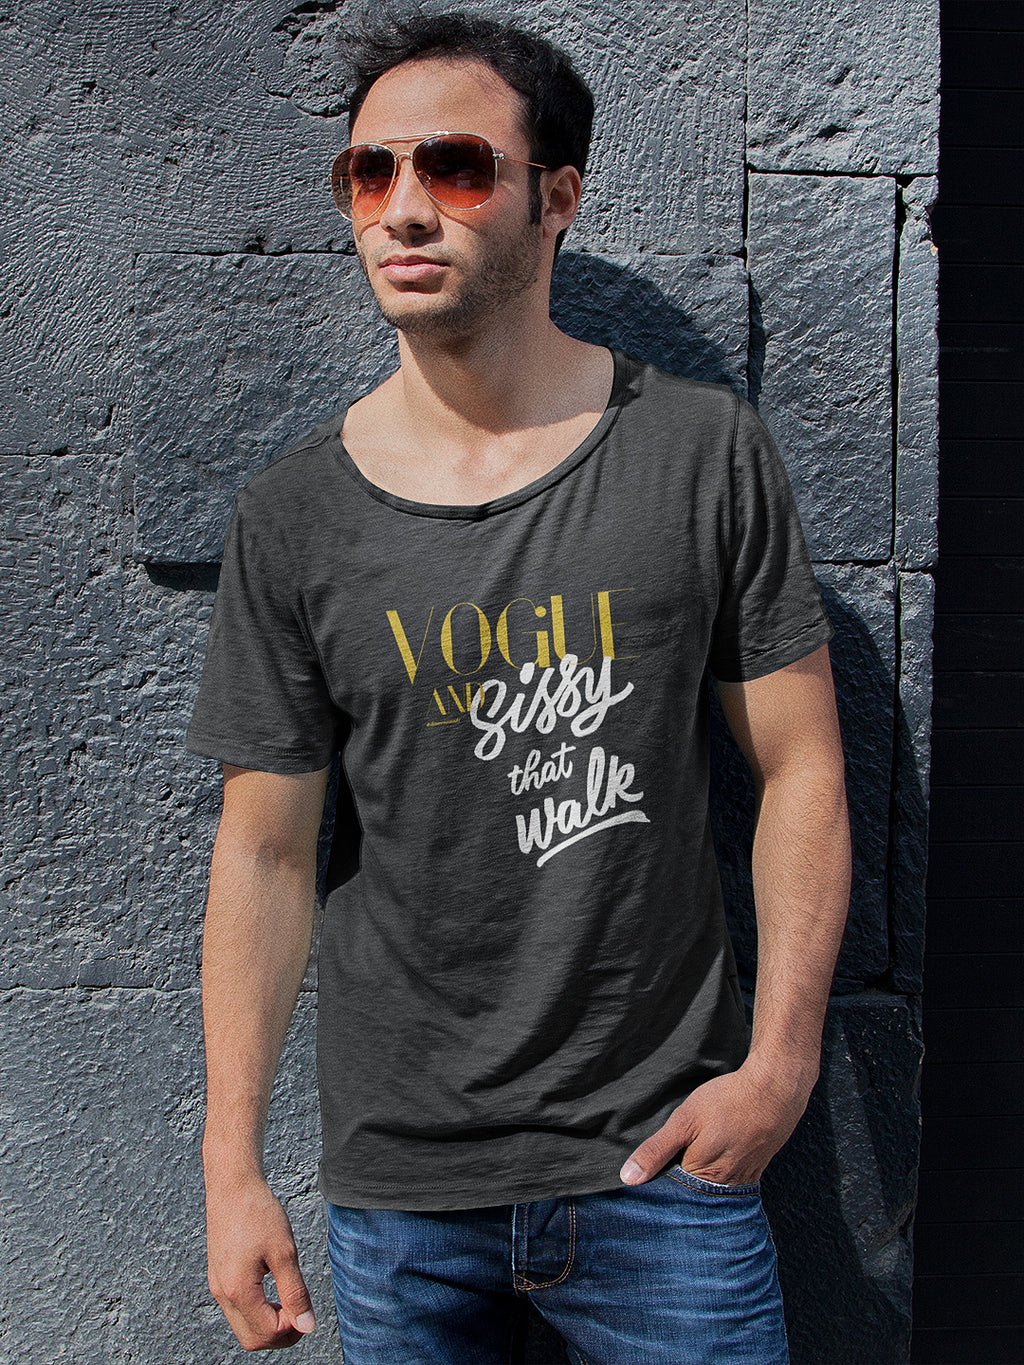 Vogue and sissy that walk scooped neck shirt for men dark heather grey